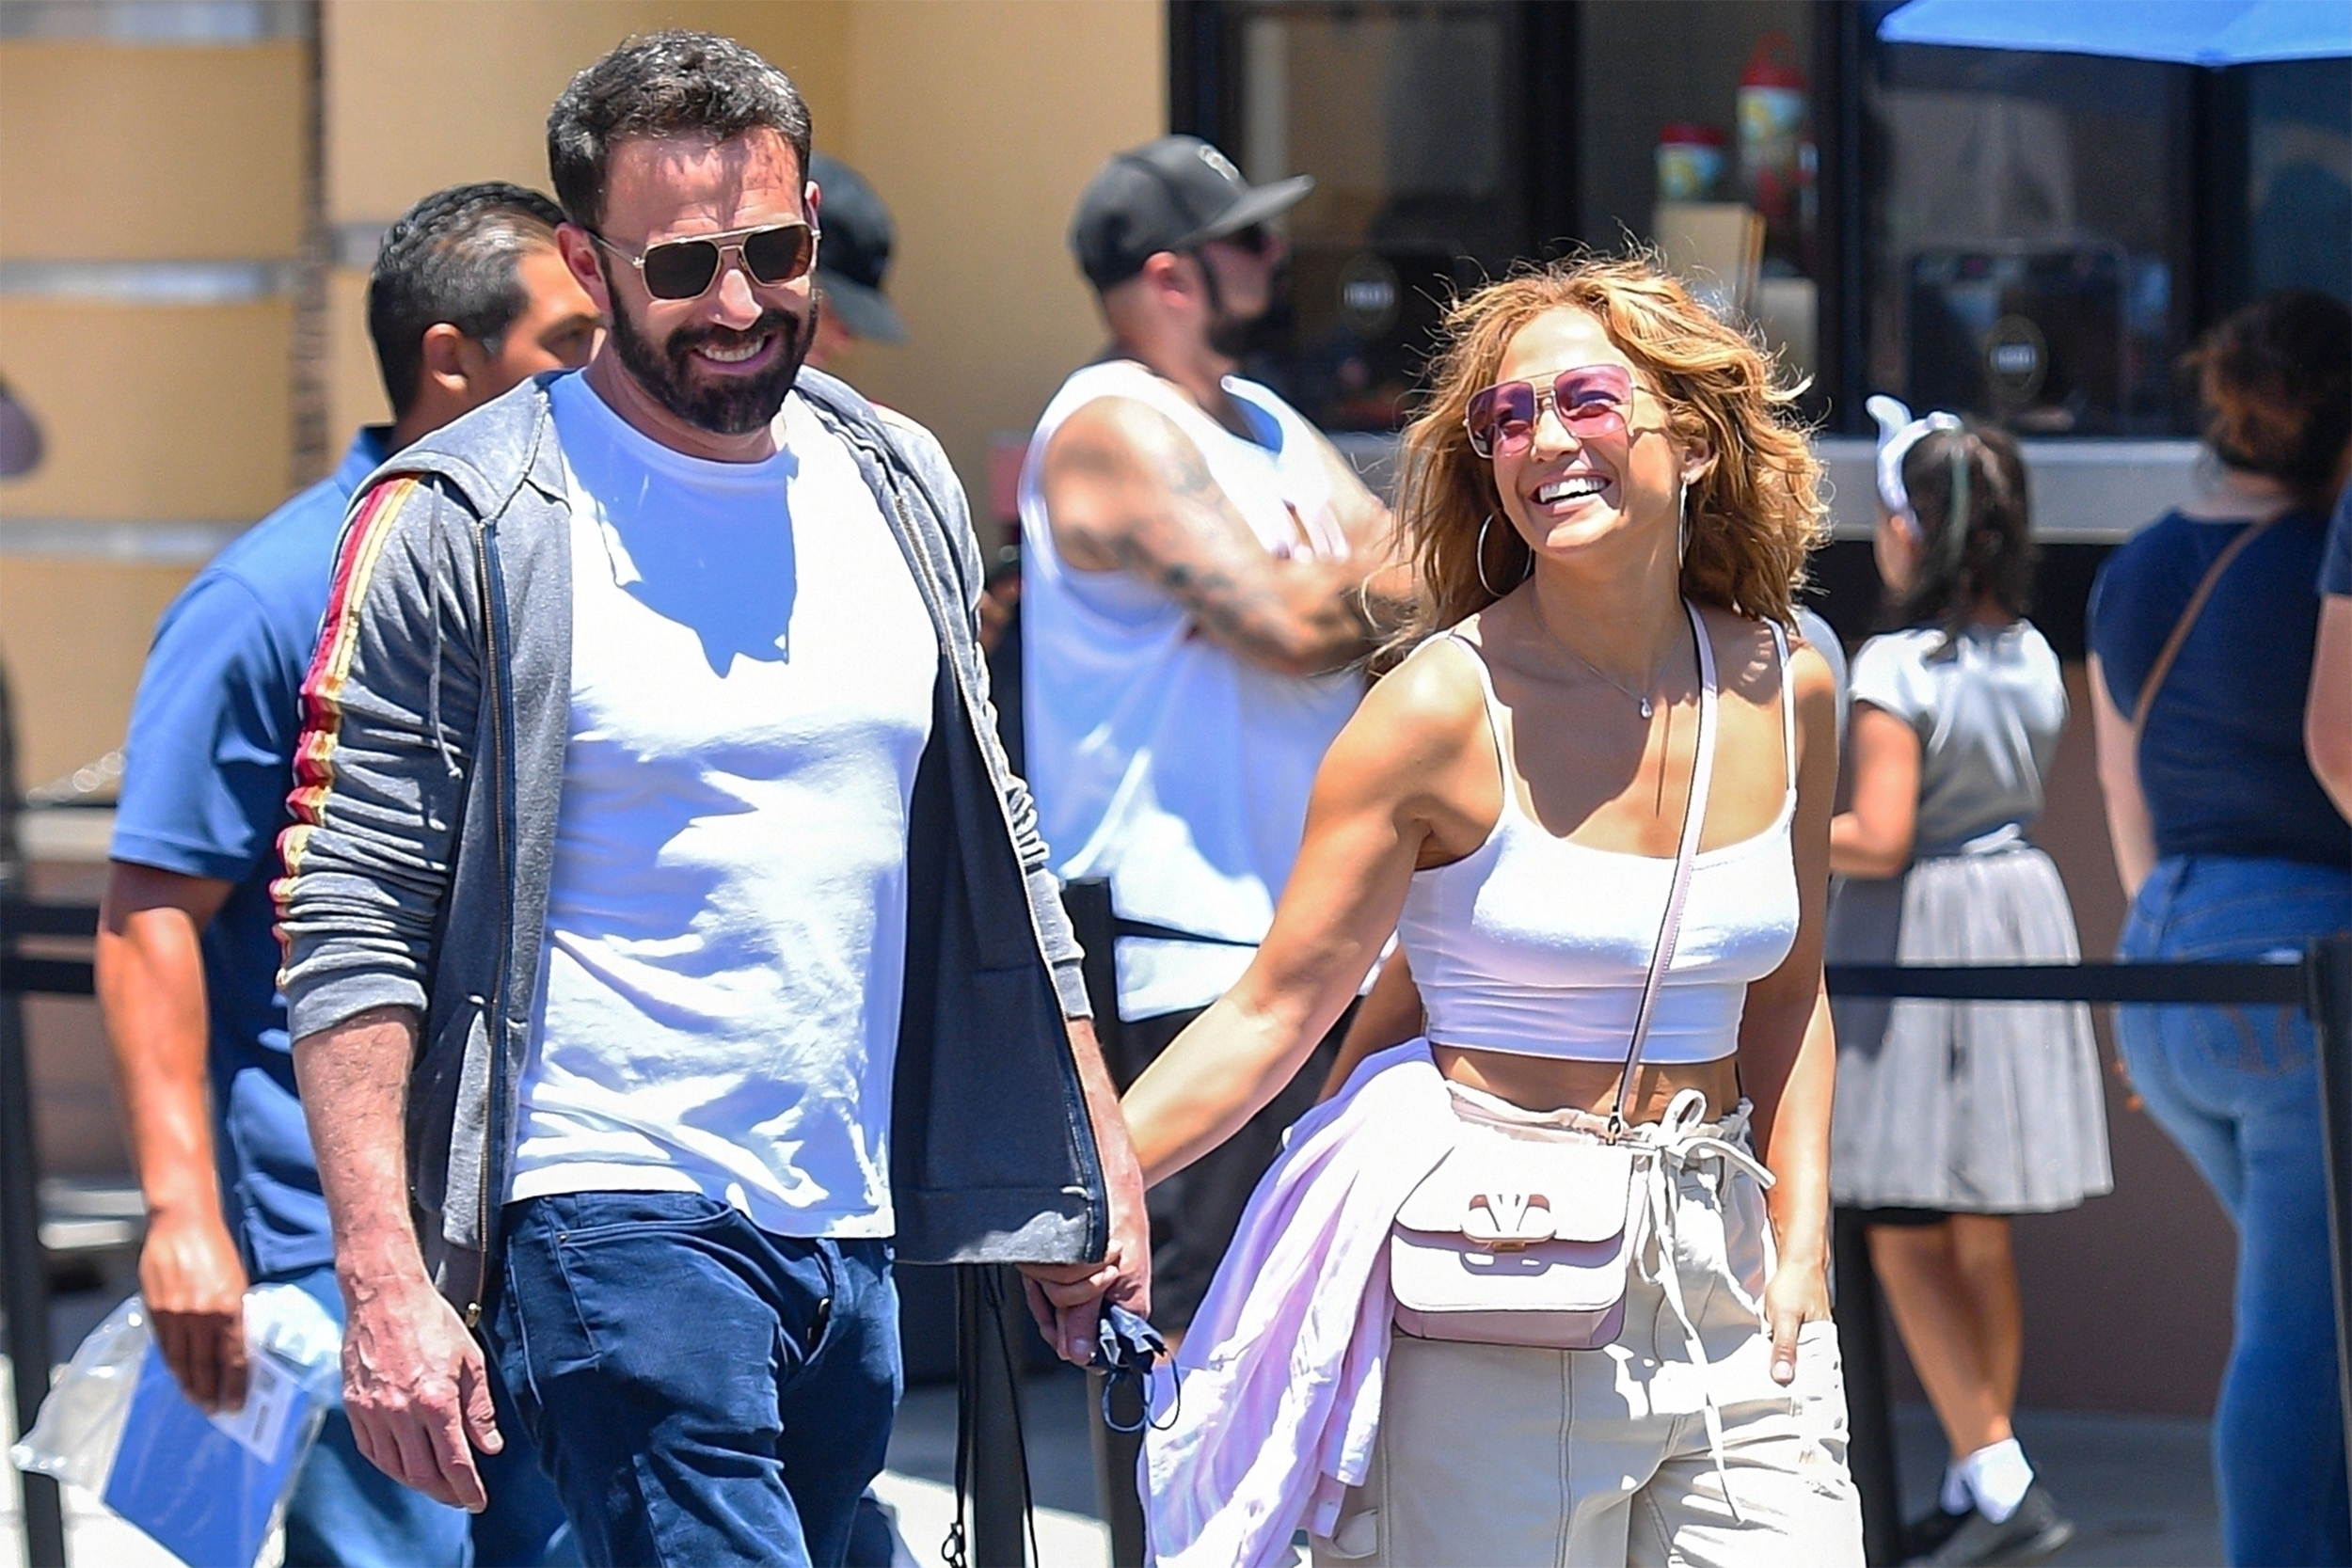 The extraordinarily clever photo that sealed Ben Affleck and Jennifer Lopez's return